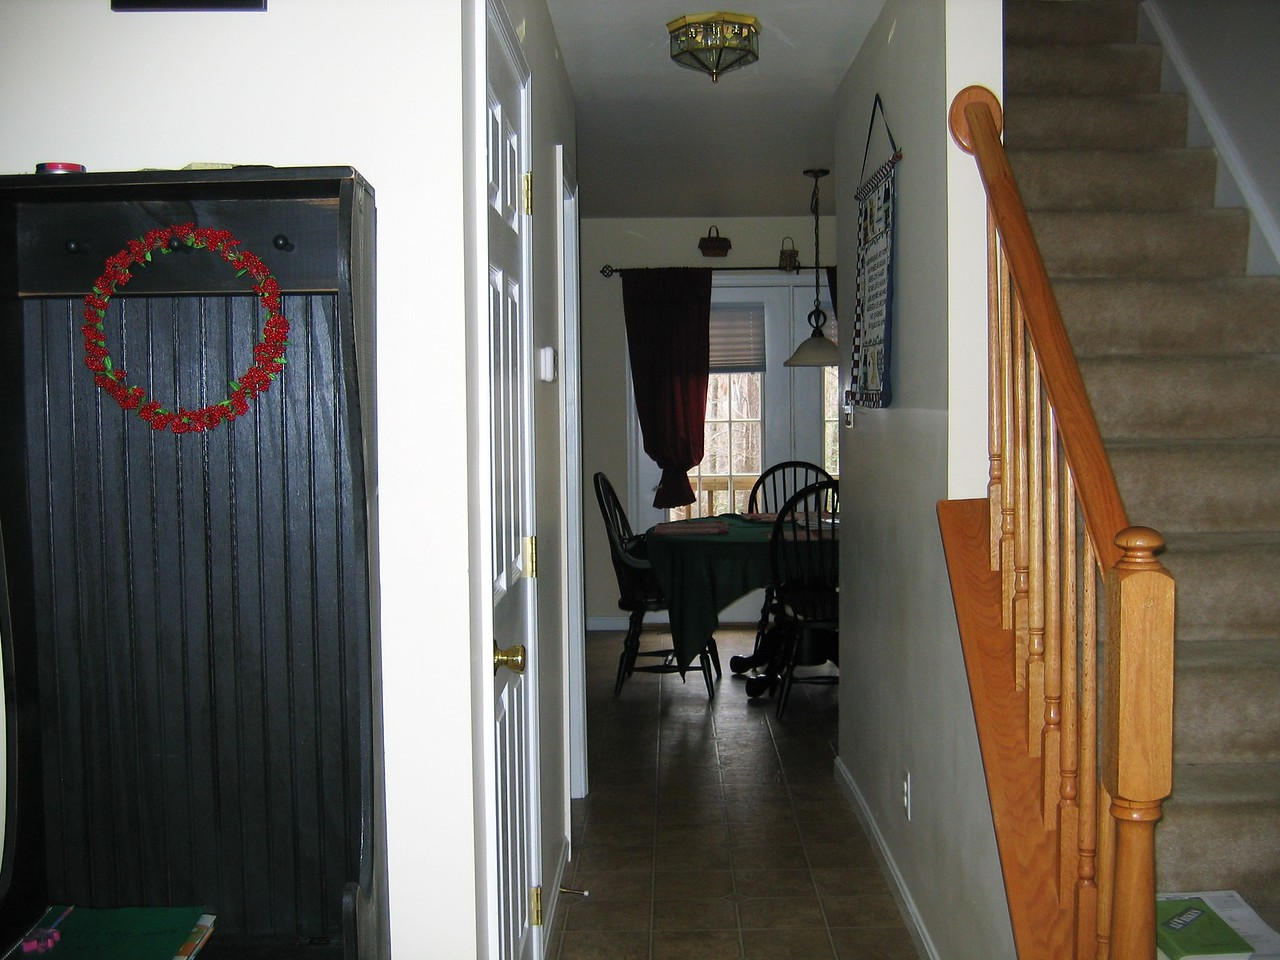 View from the entryway looking back towards the dining area and stairs to the second level are on the right.  The floors are linoleum and the carpet is a neutral beige shag carpet.